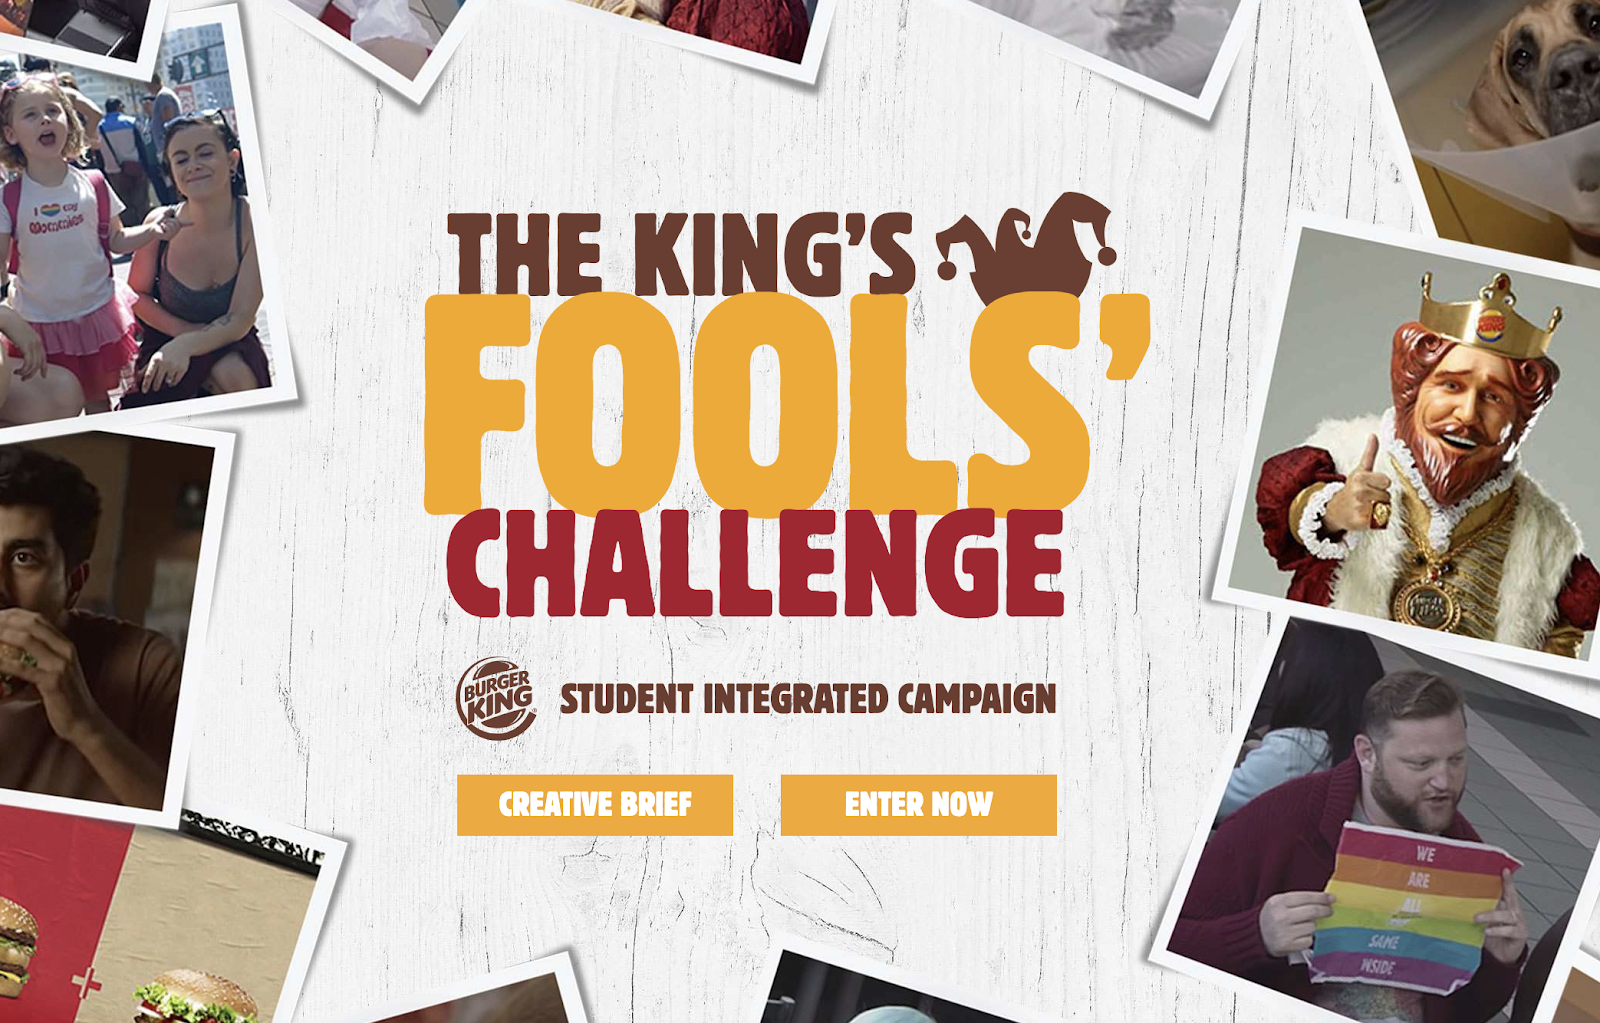 Burger King: The Challenge of the Fool King